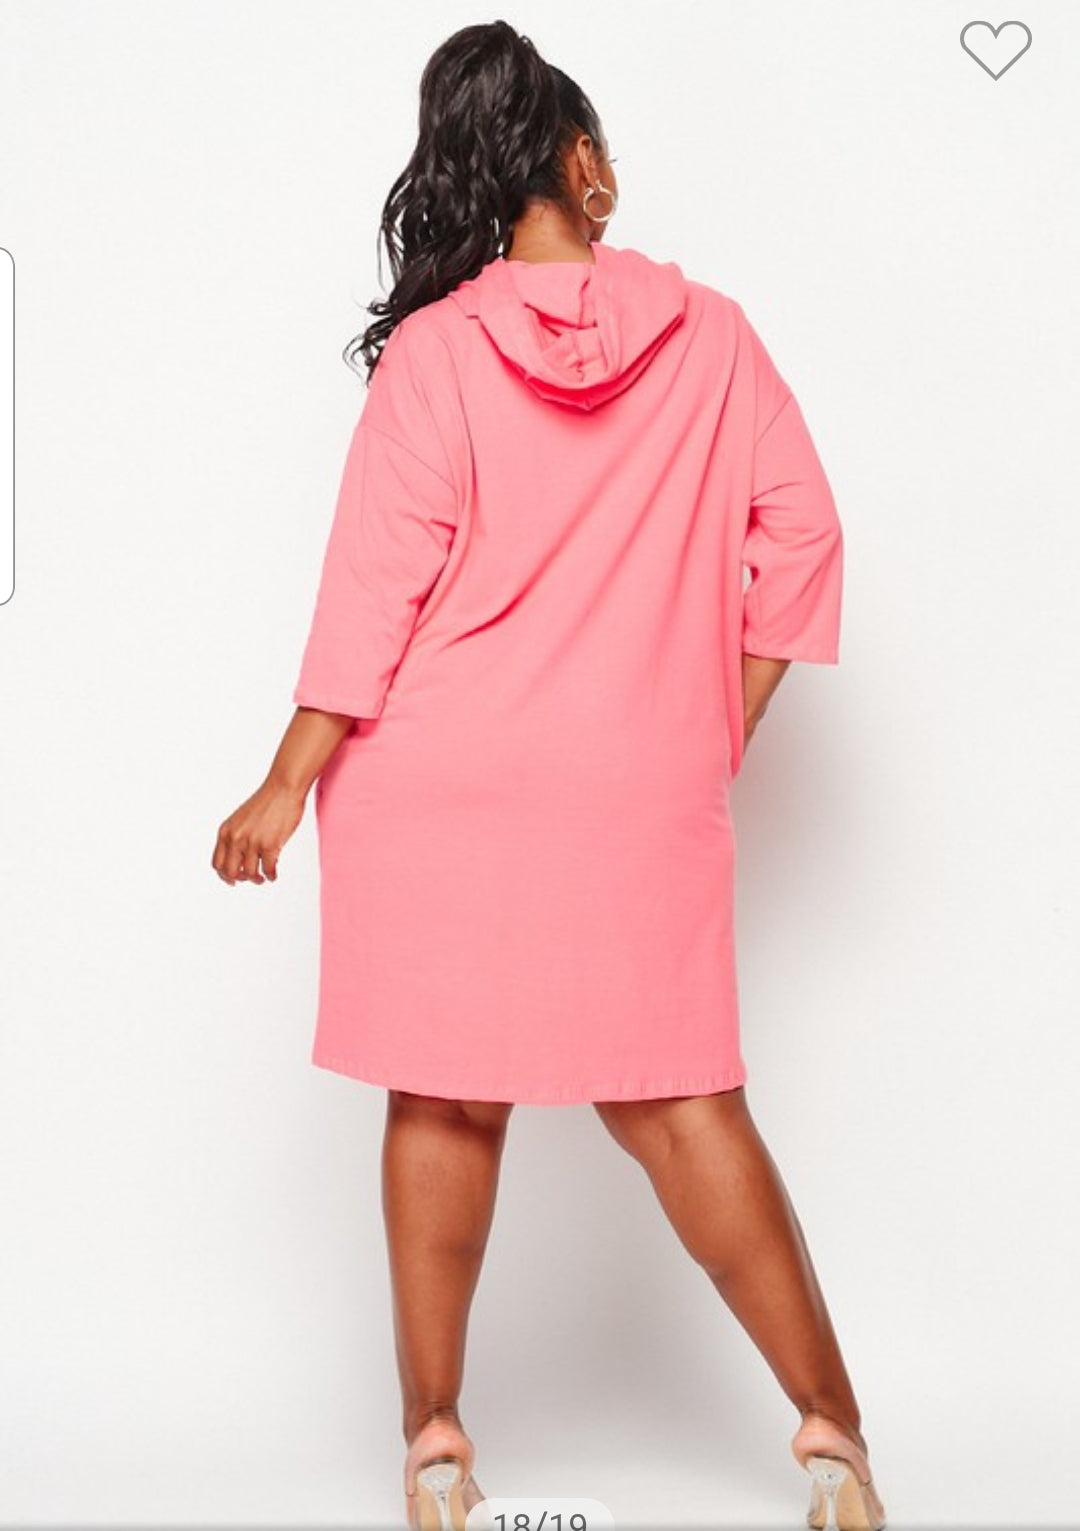 Fashion Runway Dress (coral) ships May 8th